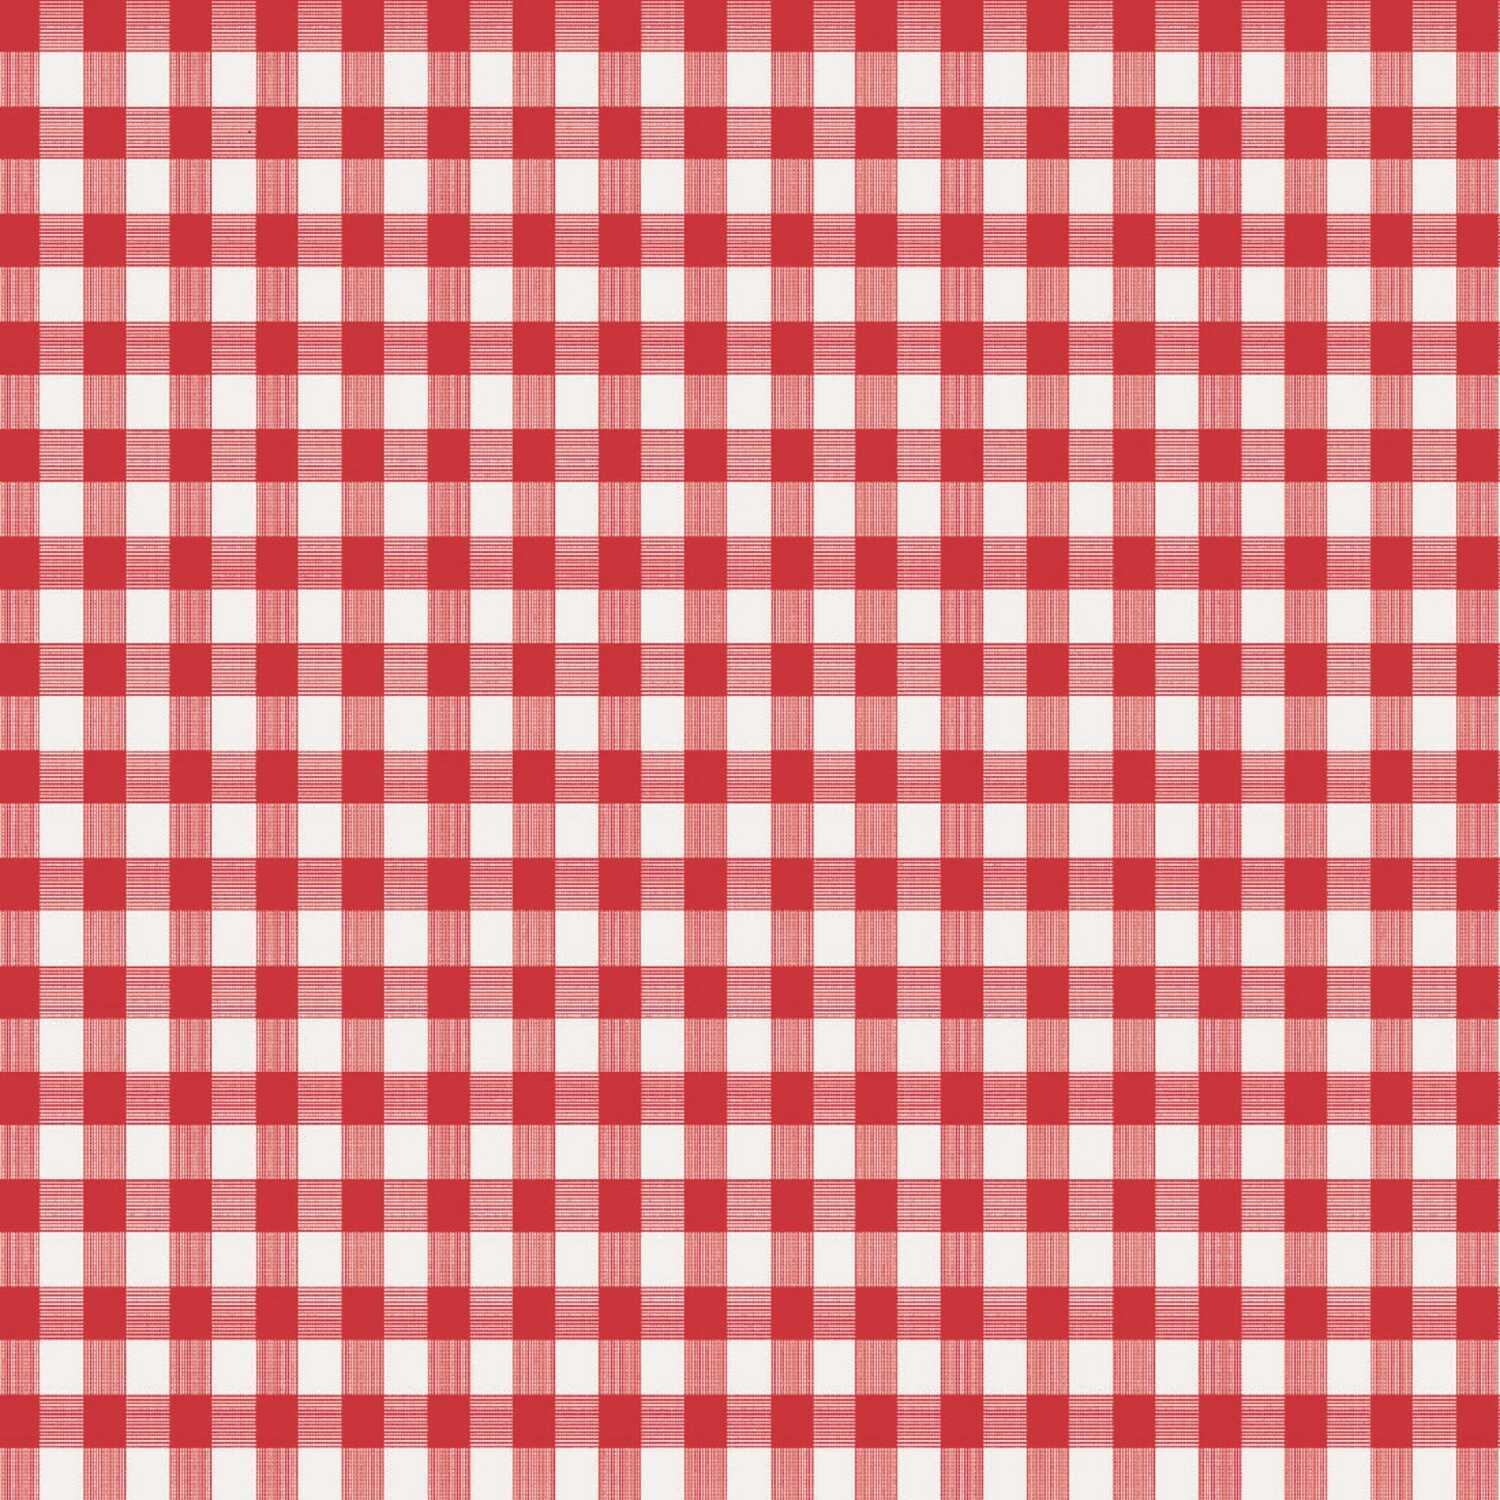 Magic Cover  Red/White Checkered  52 in. L x 52 in. W Plastic  Tablecloth